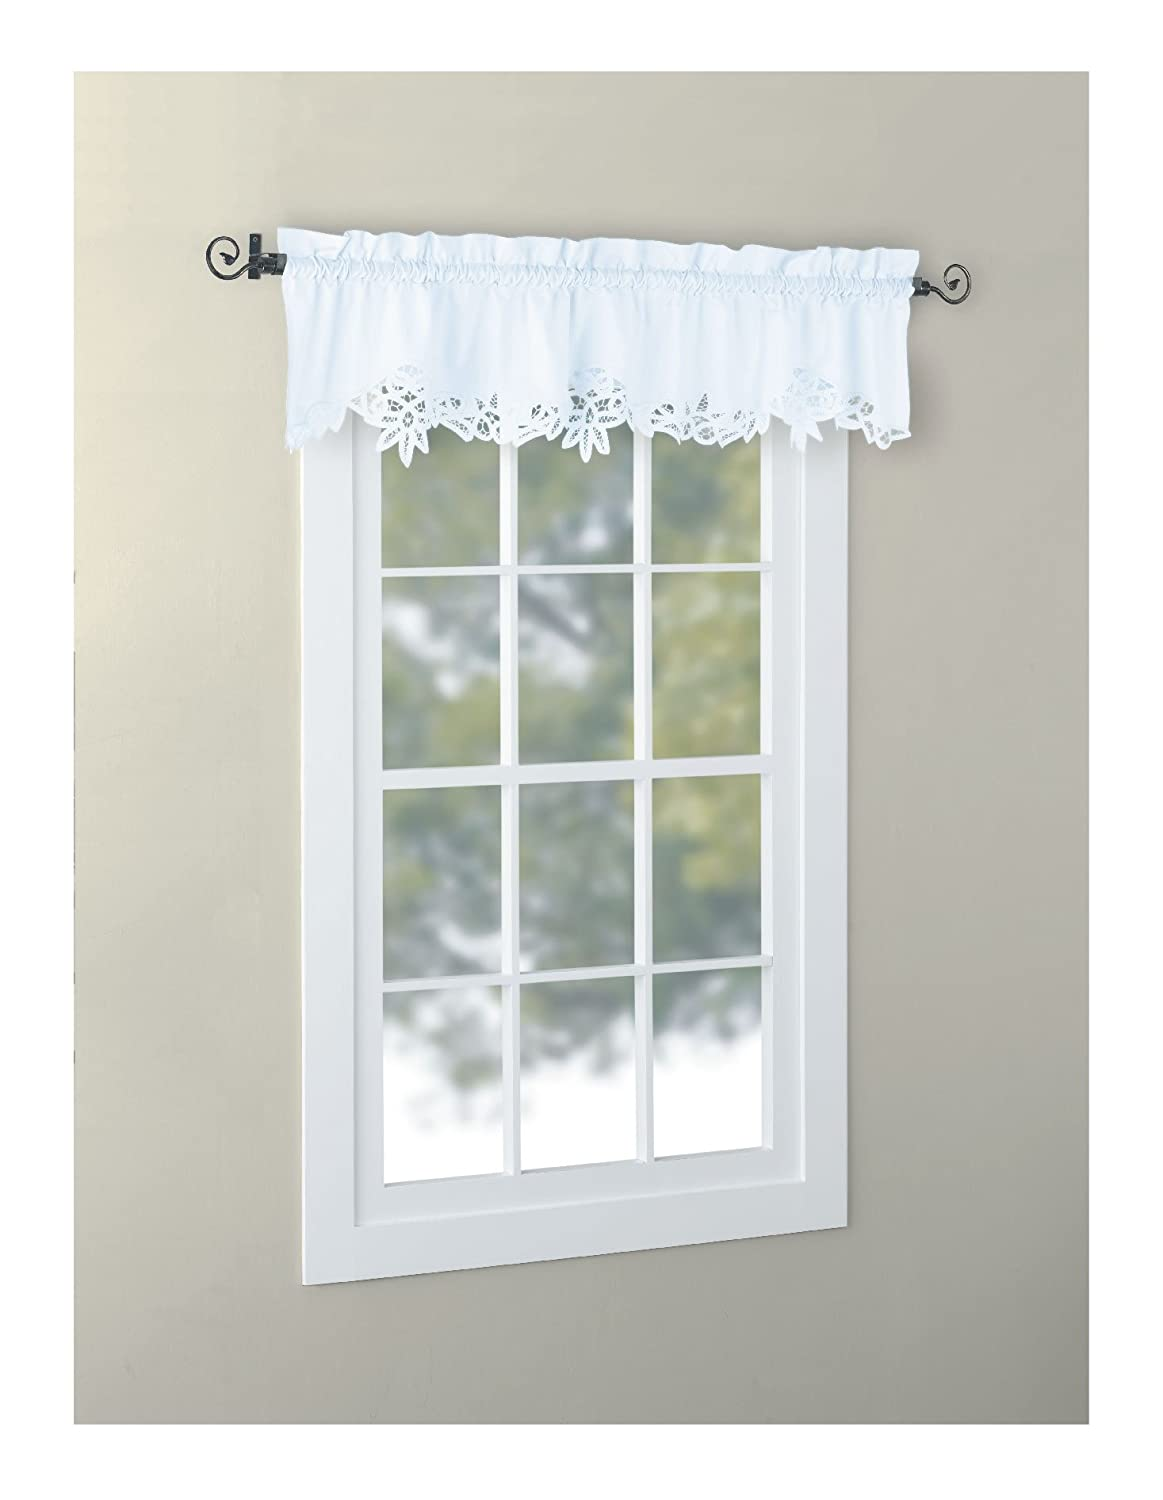 pattern garden swag sheer pair valance and product window free curtain tiers on shipping lace embroidered over voile home options leaf floral pieces scrolling orders